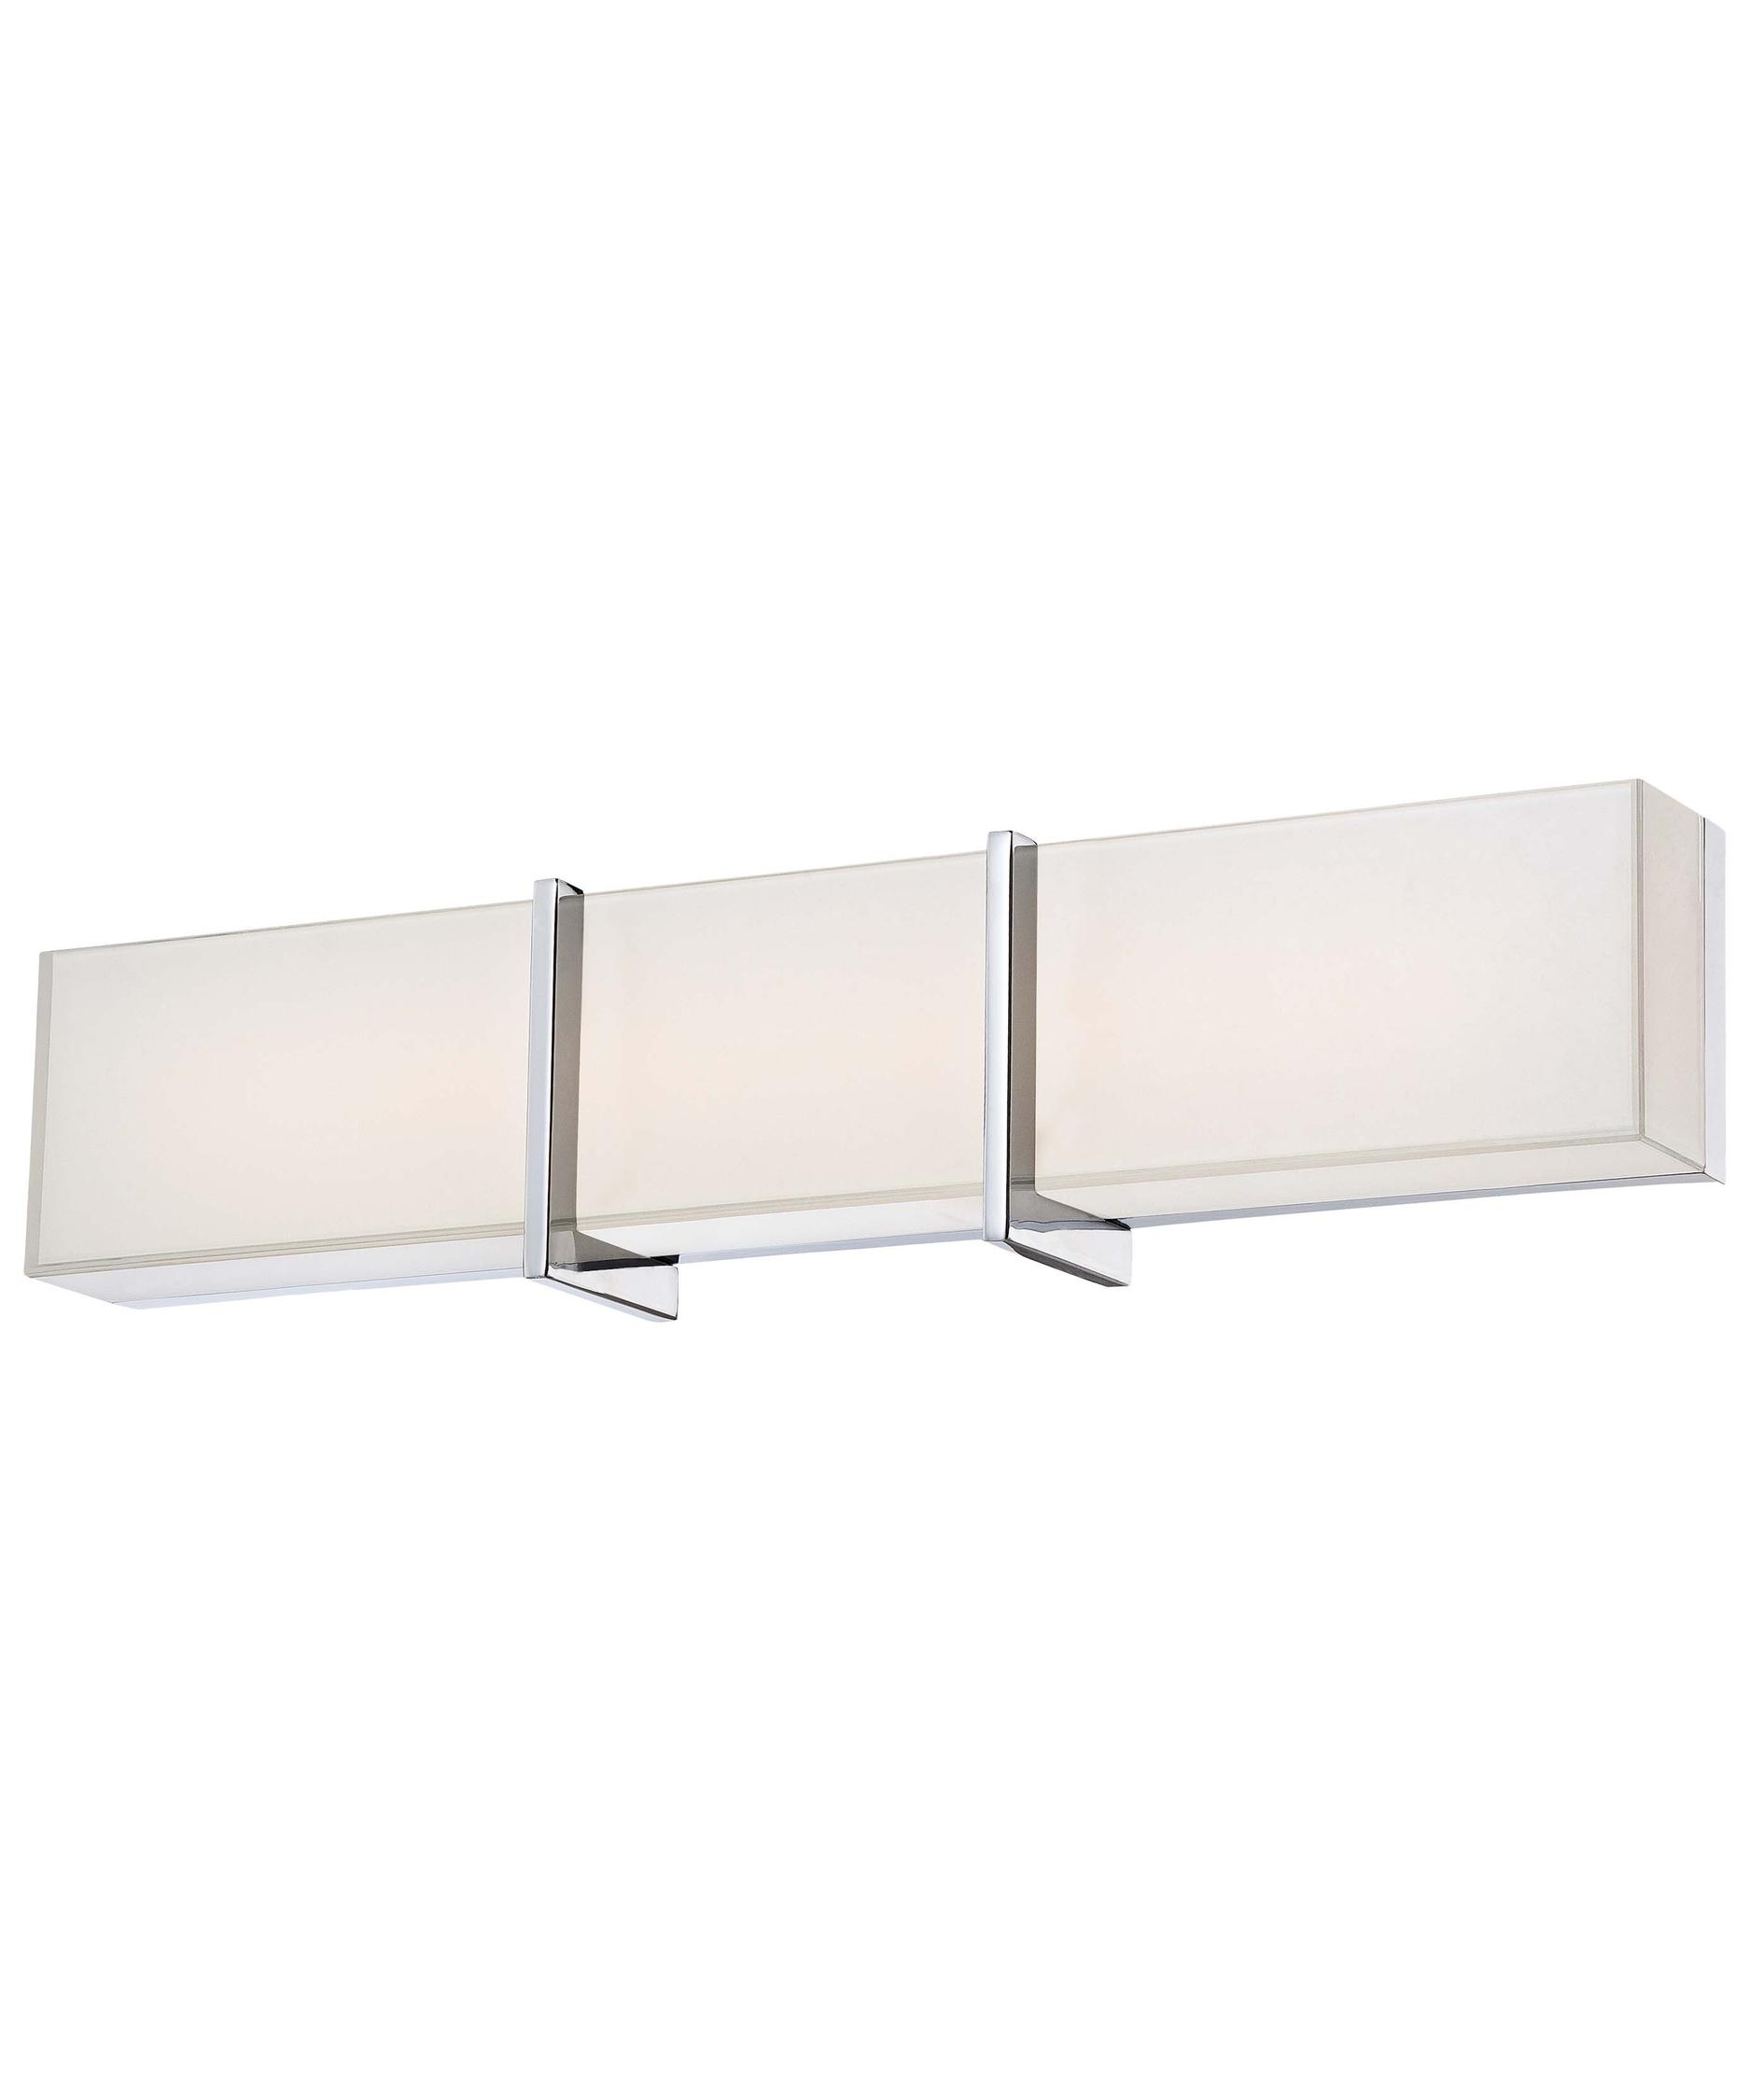 Minka Lavery Bathroom Lighting minka lavery 2922 high rise 24 inch wide bath vanity light